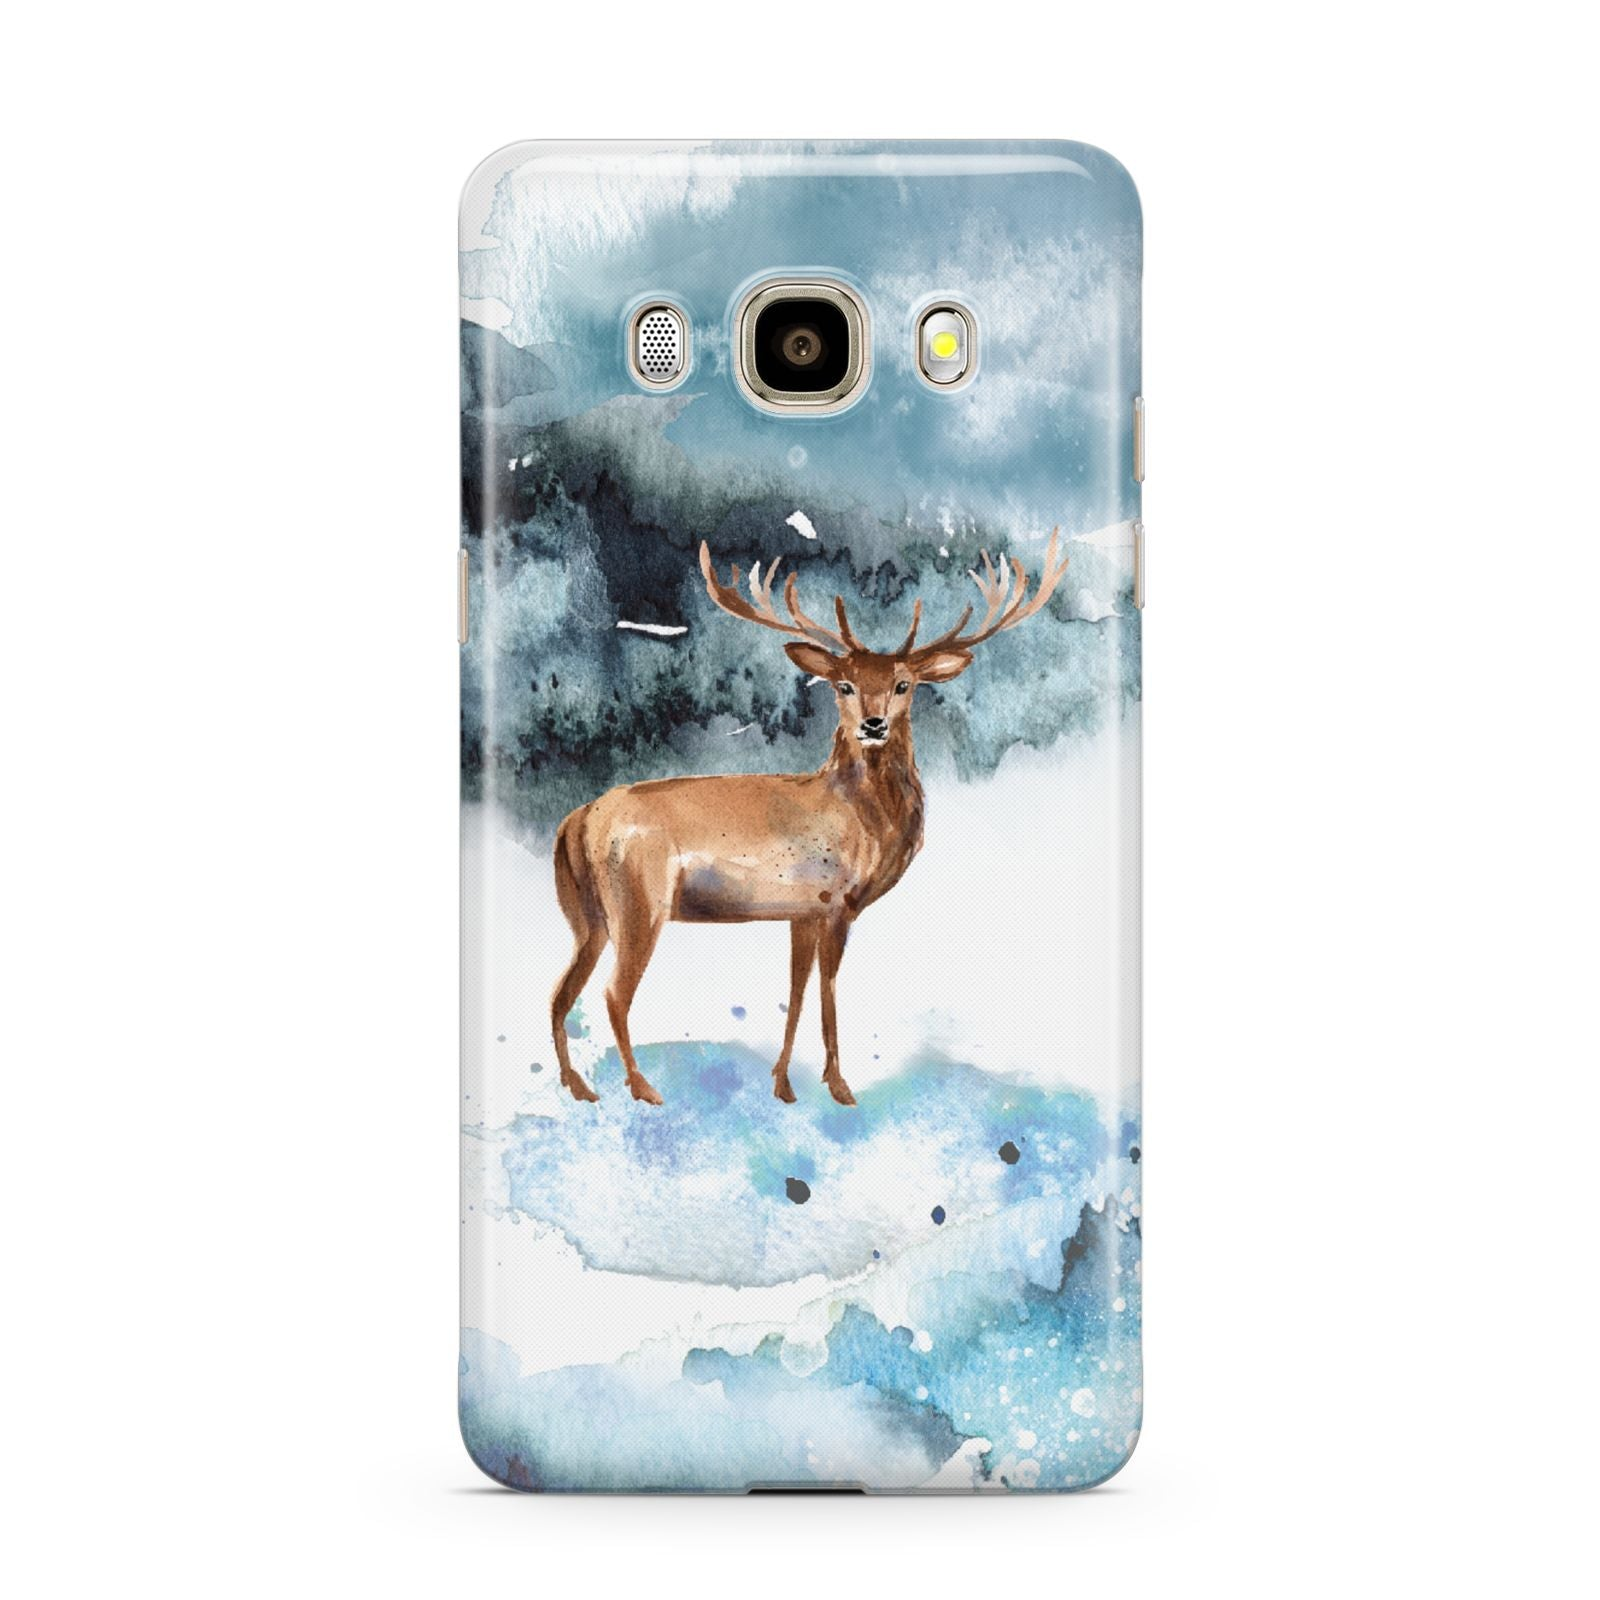 Christmas Winter Stag Samsung Galaxy J7 2016 Case on gold phone